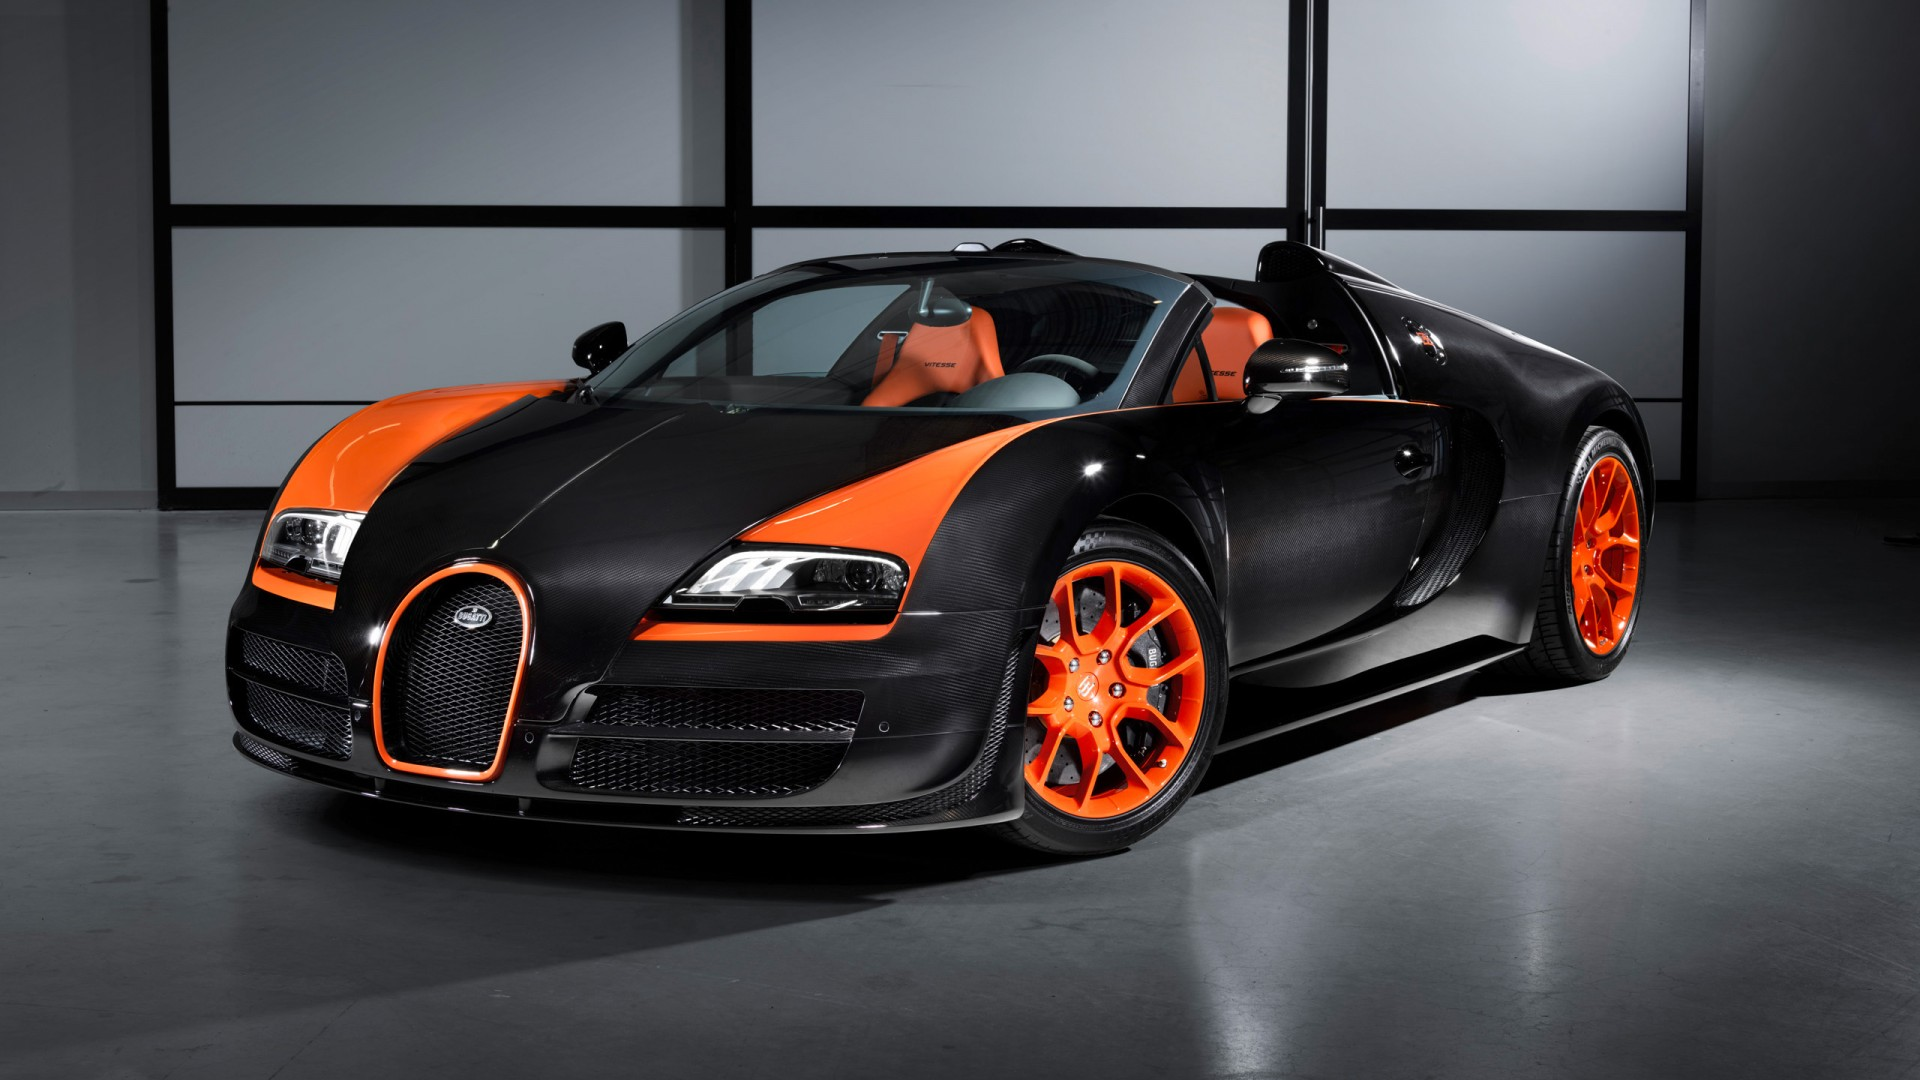 2013 bugatti veyron 16 4 grand sport vitesse world speed record wallpaper in. Black Bedroom Furniture Sets. Home Design Ideas